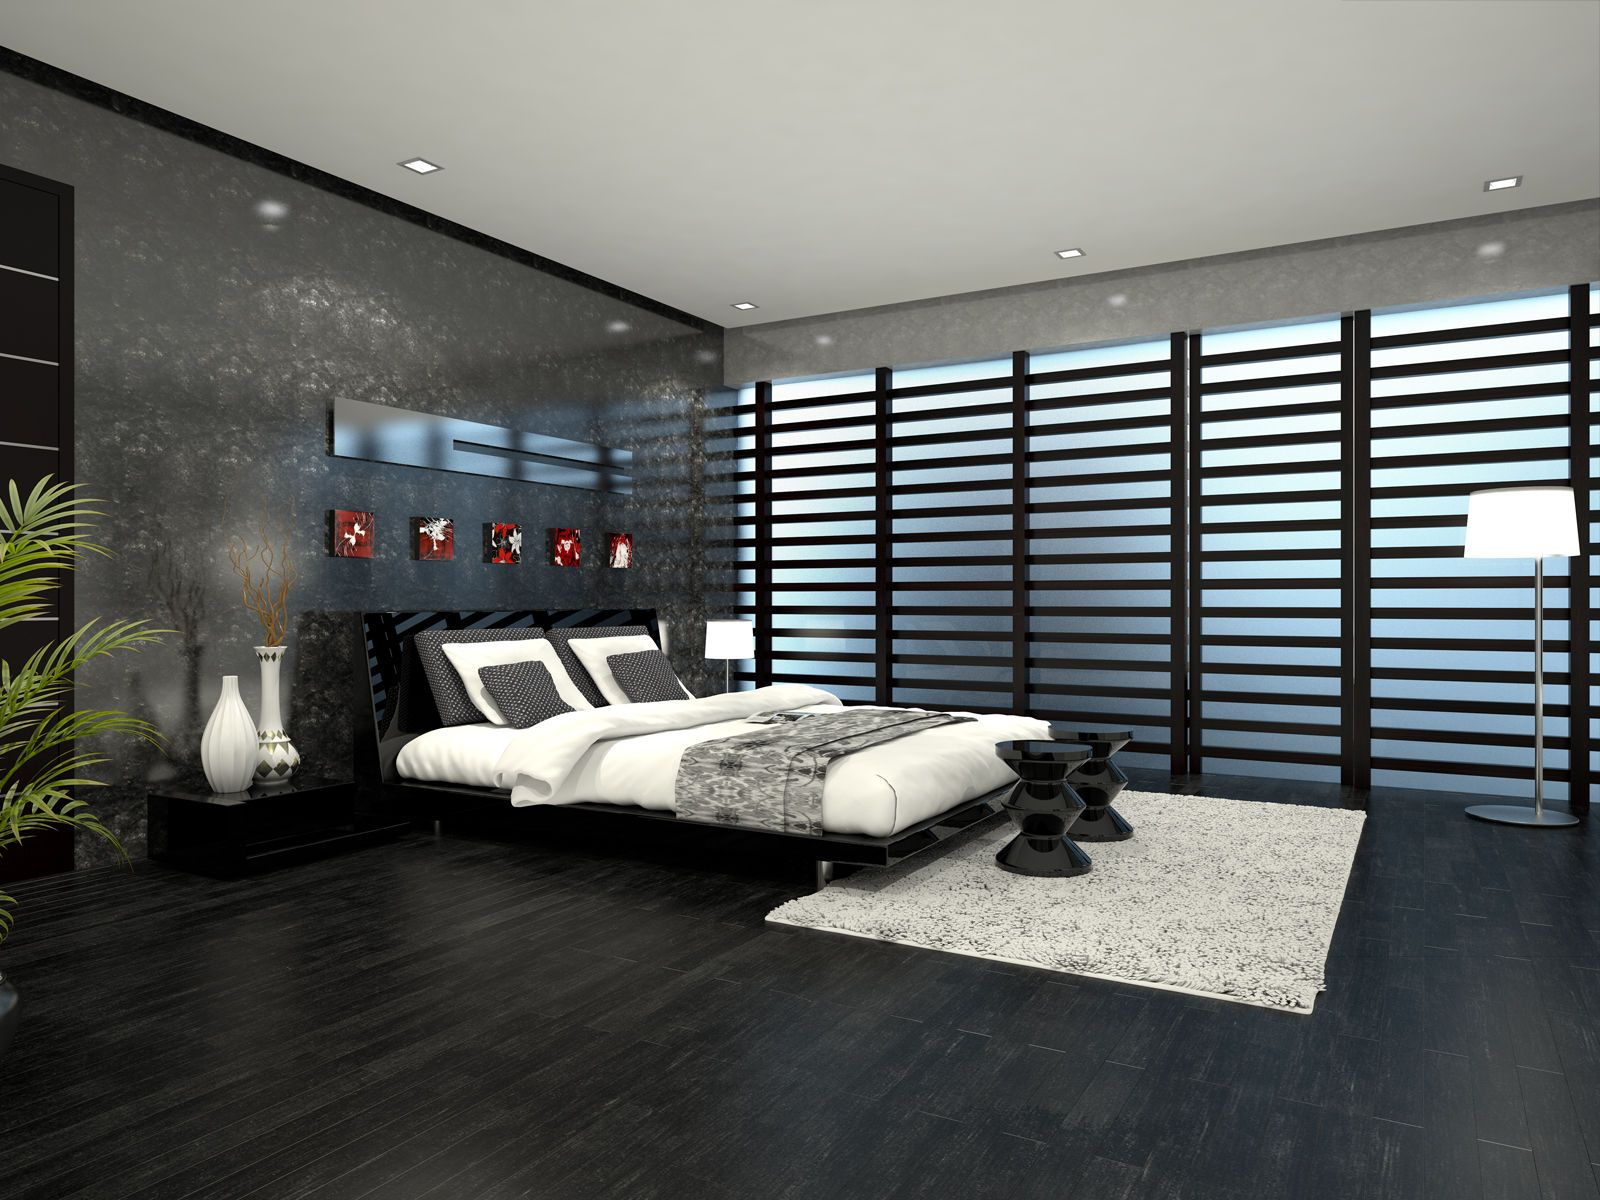 3d Model Interior Design Free Download Photo 3d Interior